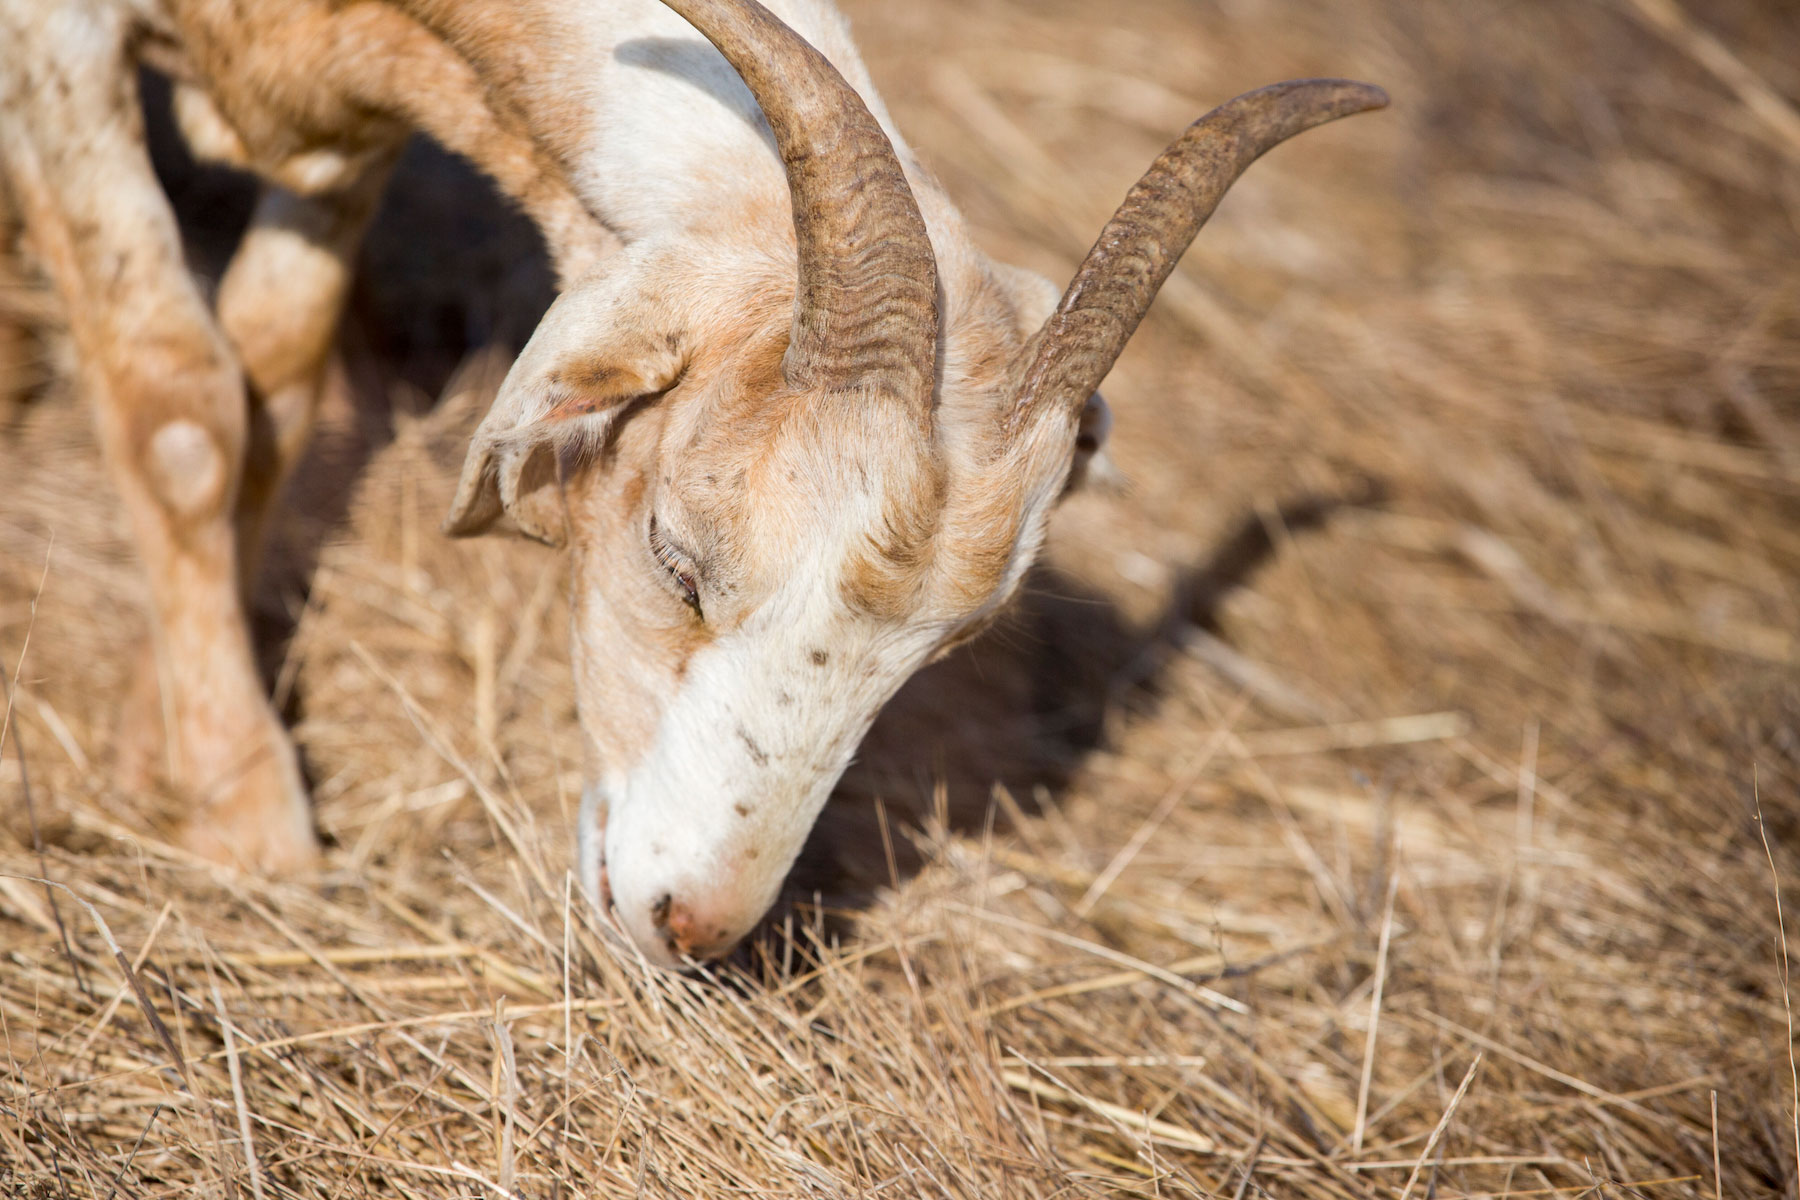 Ruminations about goat